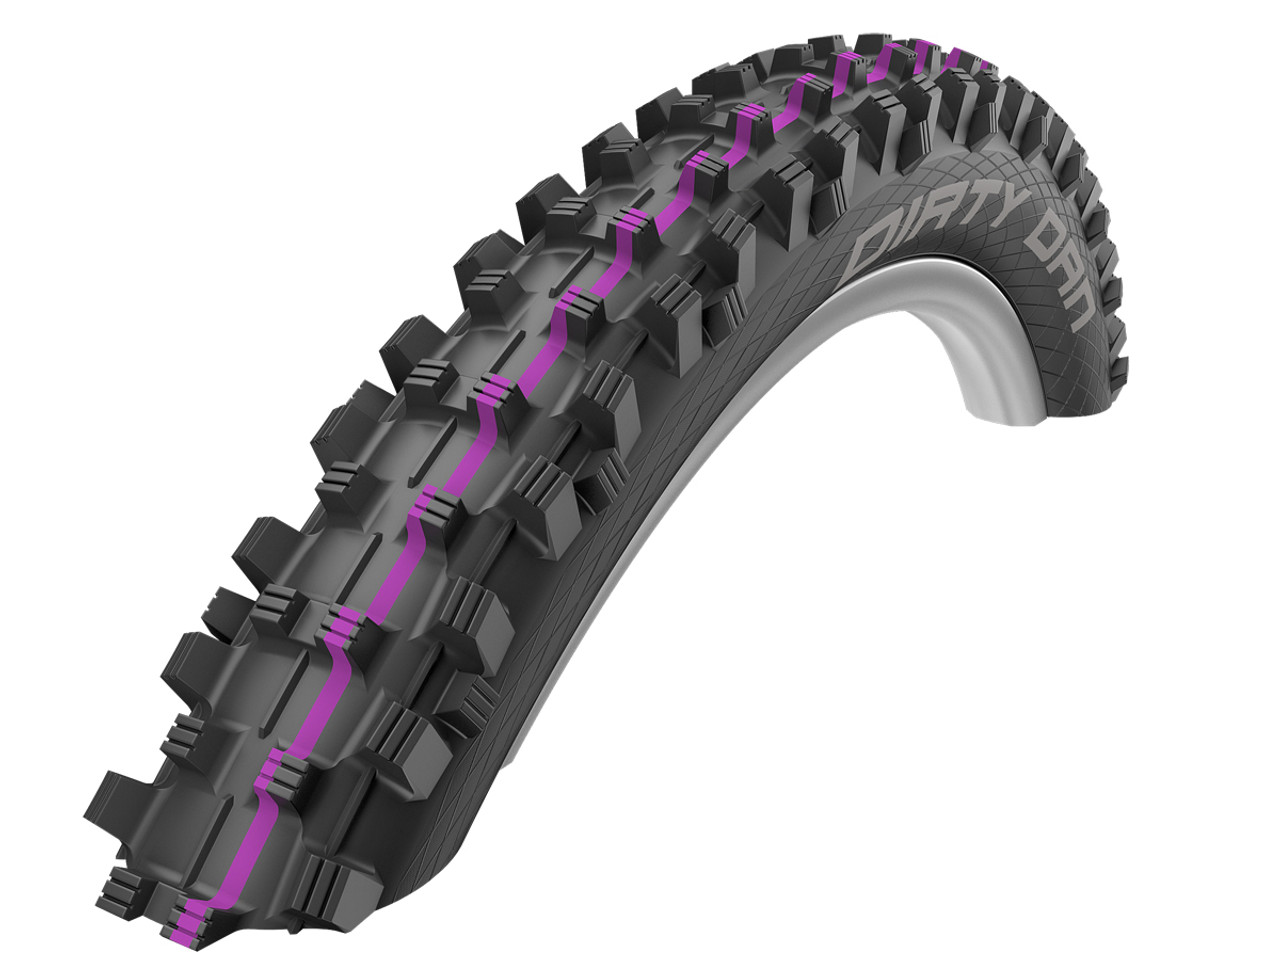 Schwalbe Addix Dirty Dan Ultra Soft Super Gravity TLR Folding Tyre 27.5 x 2.35